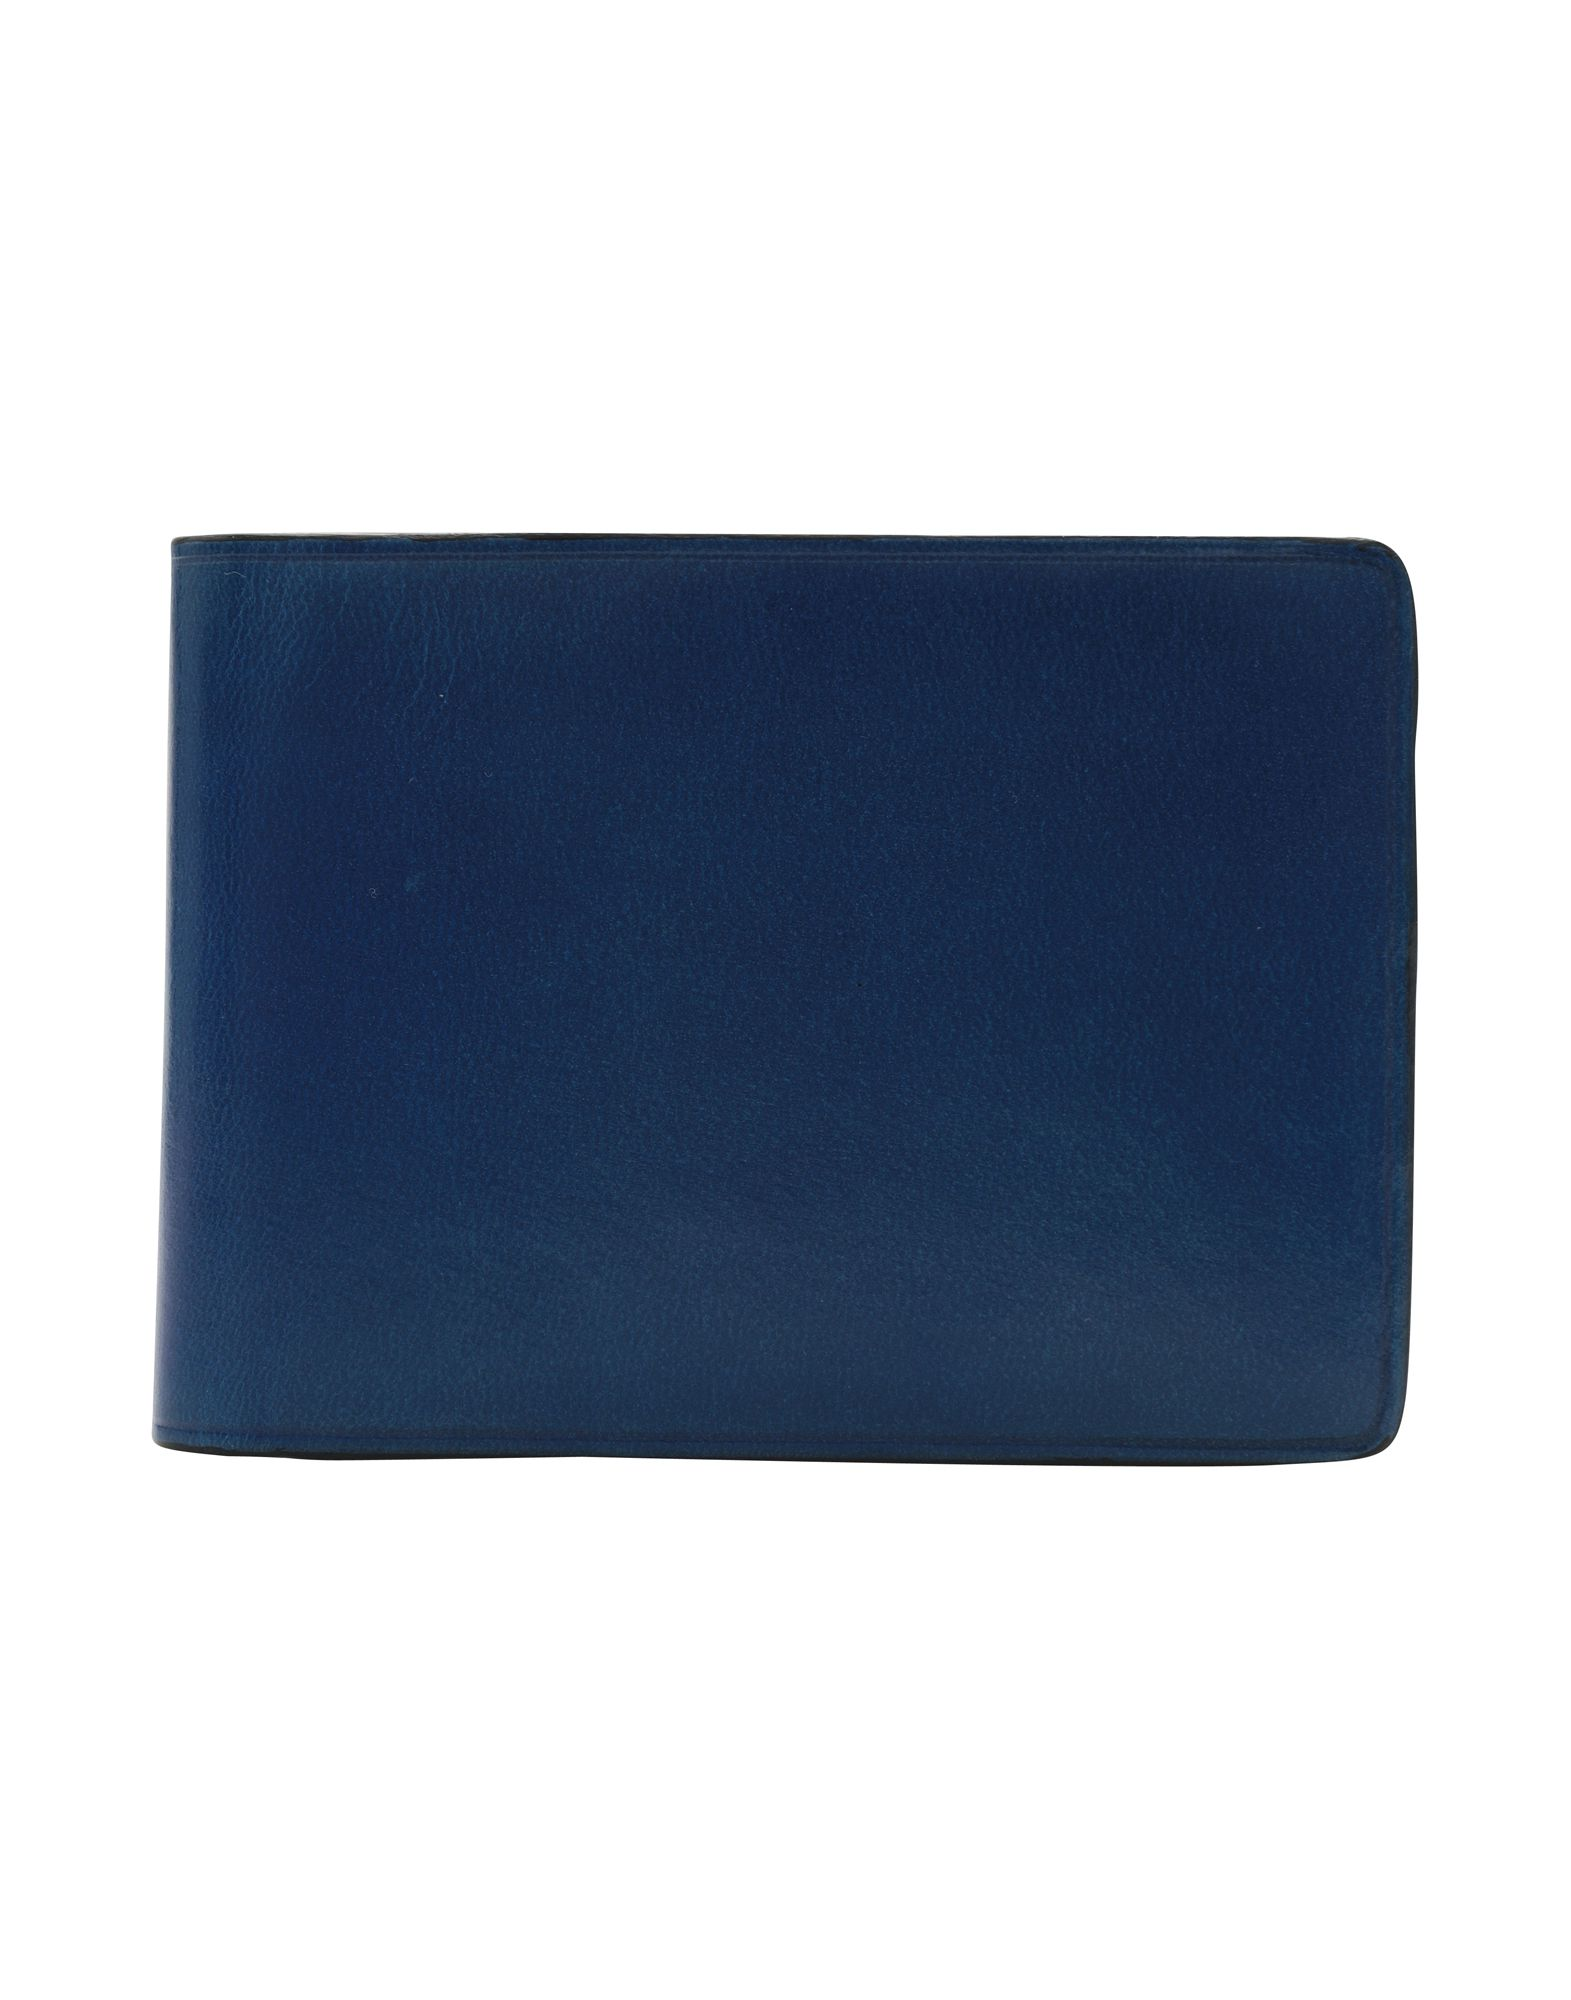 IL BUSSETTO Wallet in Blue